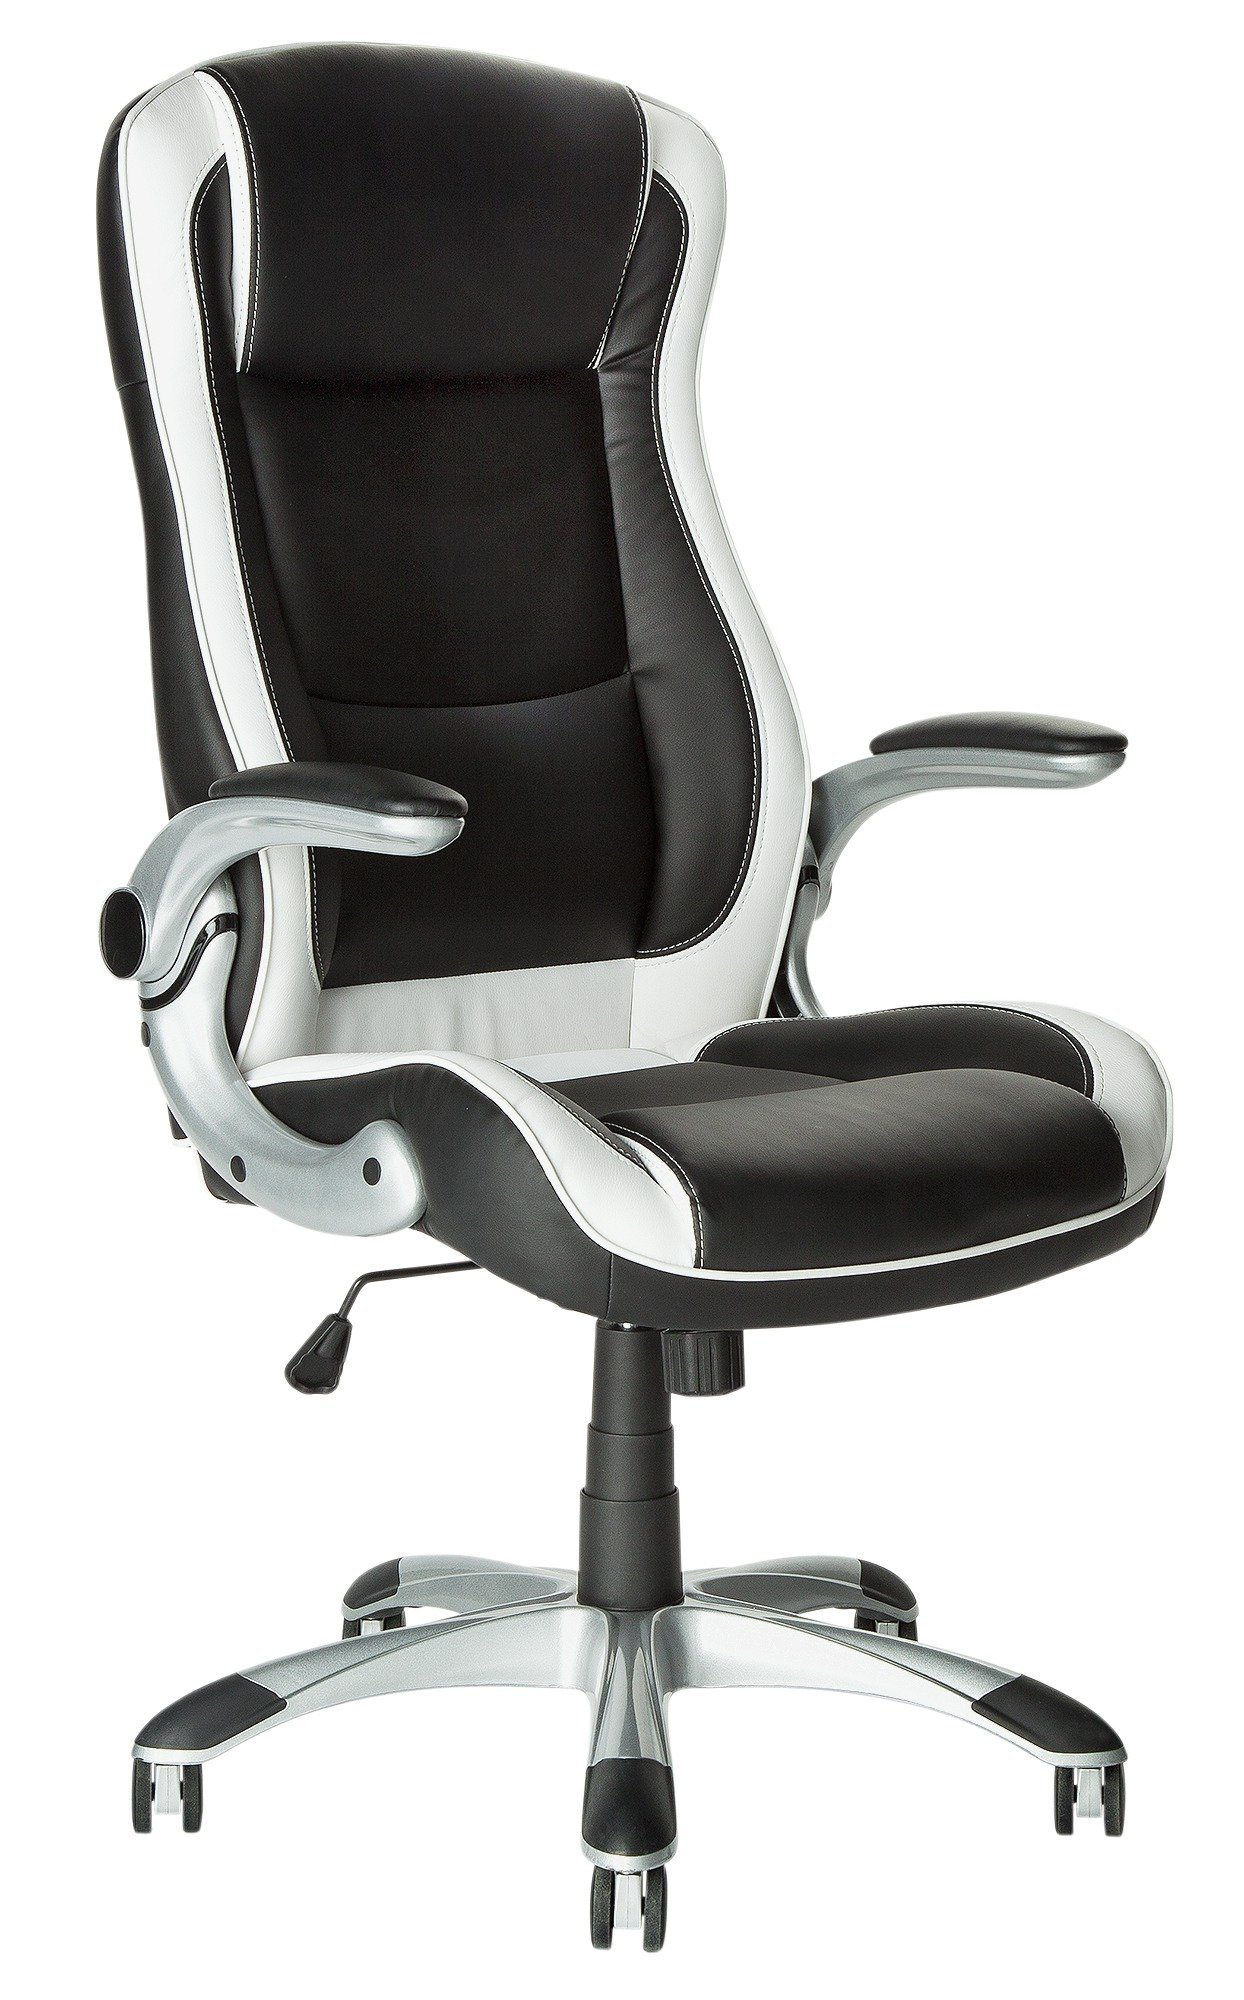 adjustable chairs with wheels. home dexter height adjustable office chair - black/white chairs with wheels e